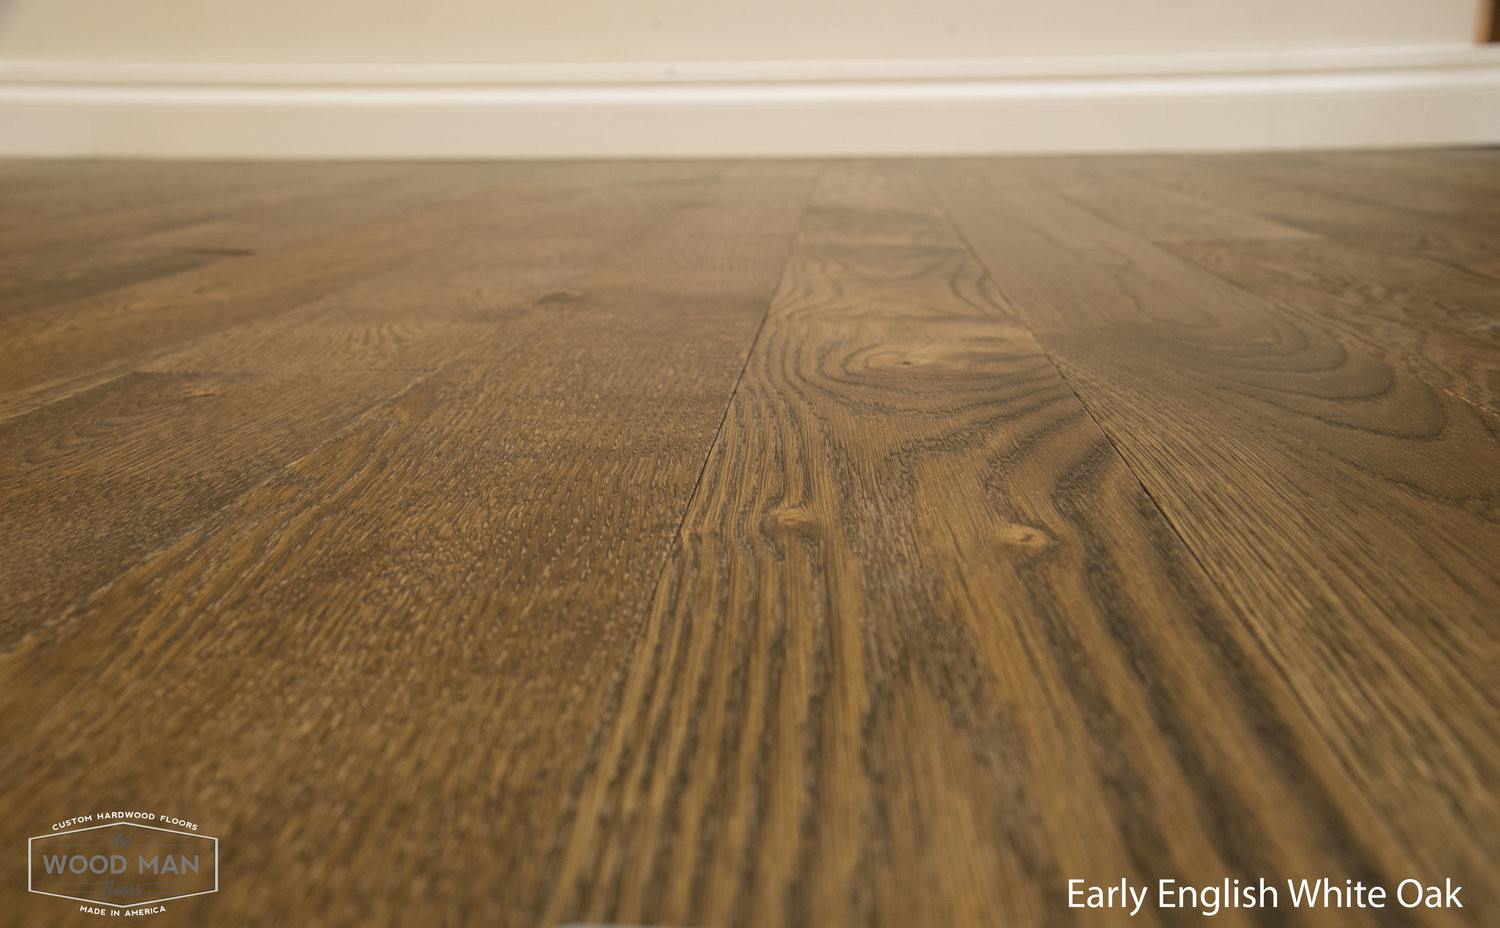 staining hardwood floors by hand of the wood man floors pictures the wood man floors within early english white oak 3